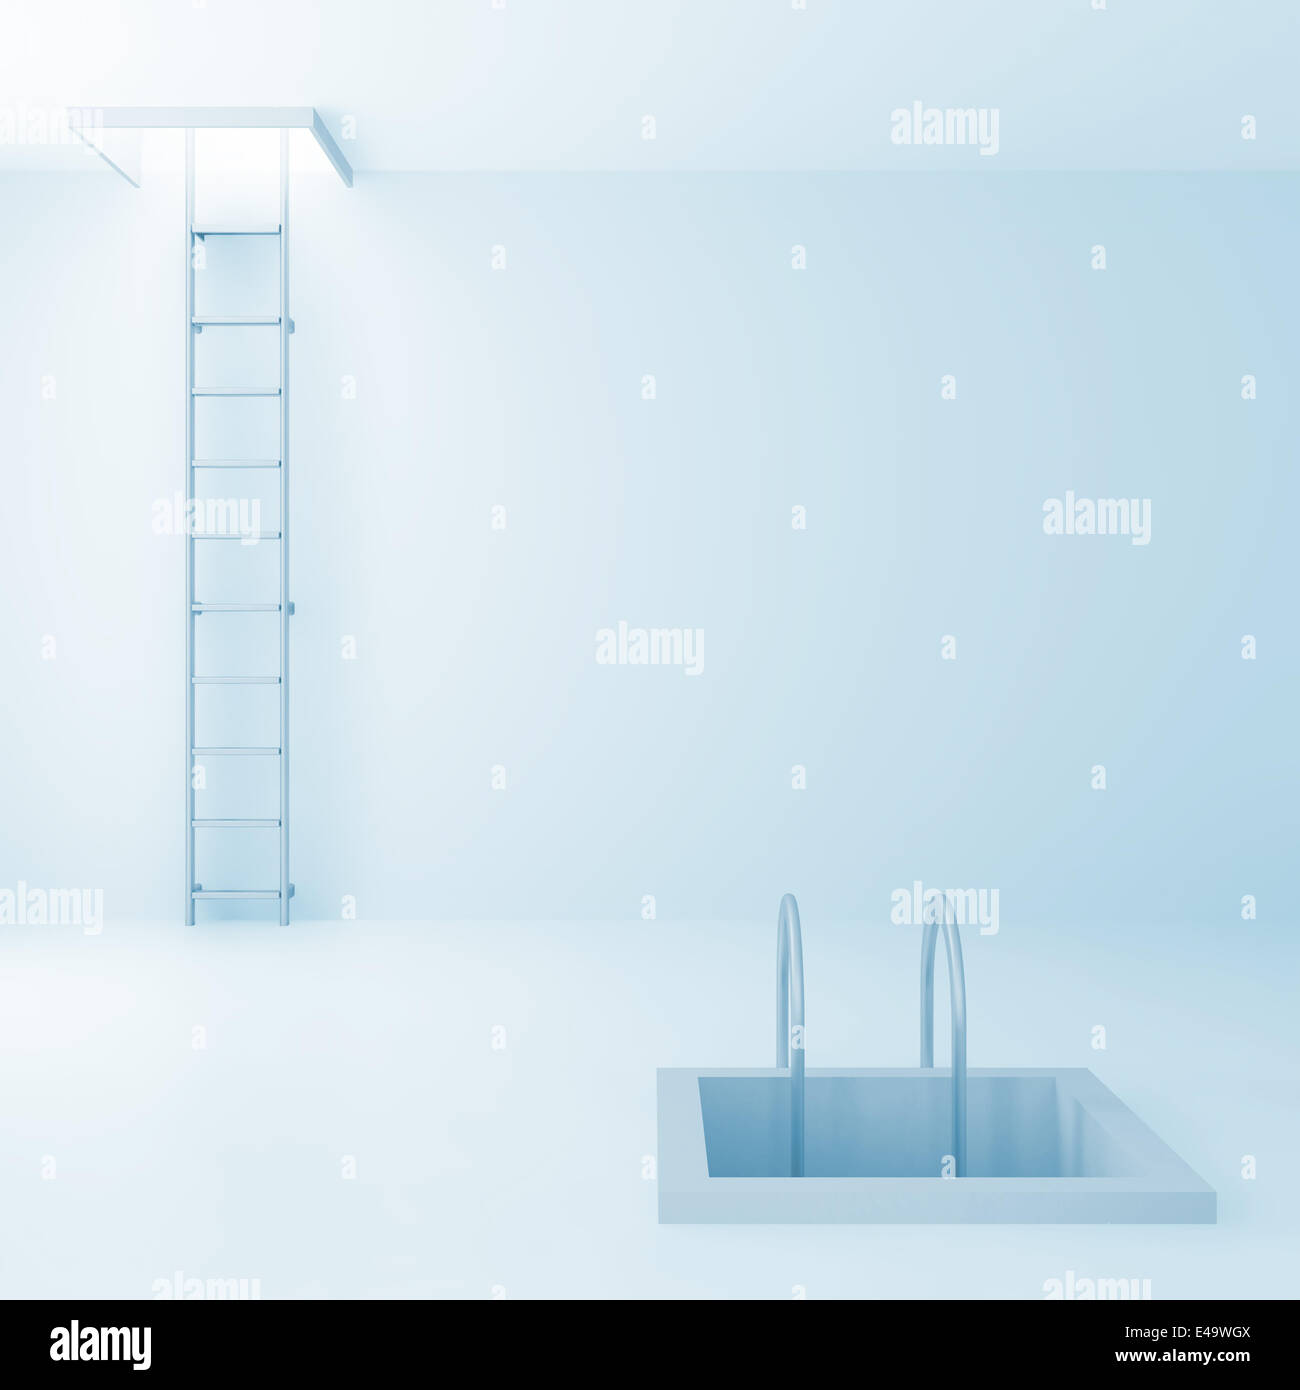 Ladders upwards and downwards - Stock Image